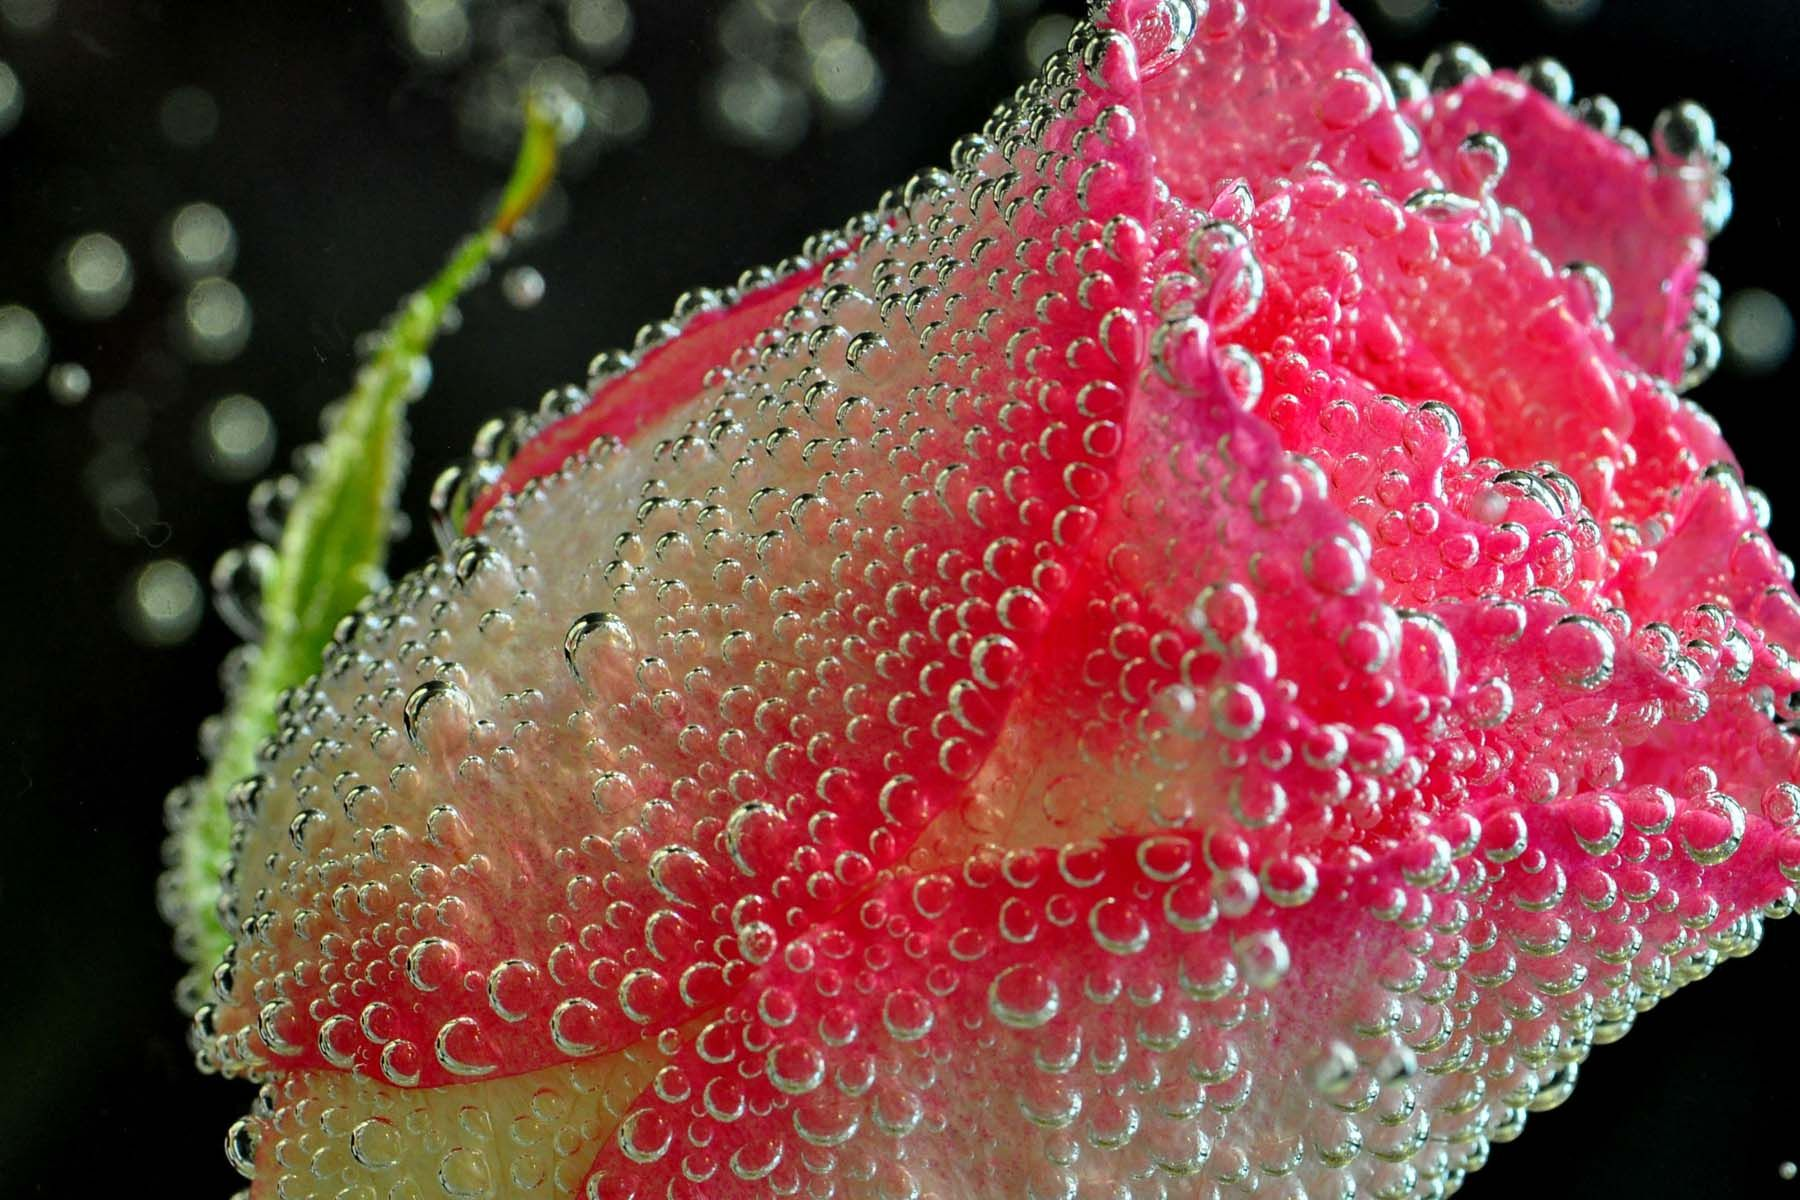 Fine art photography rose and bubbles 2 a beautiful pink and fine art photography rose and bubbles 2 a beautiful pink and white rose flower with a black background the background makes this water submerged izmirmasajfo